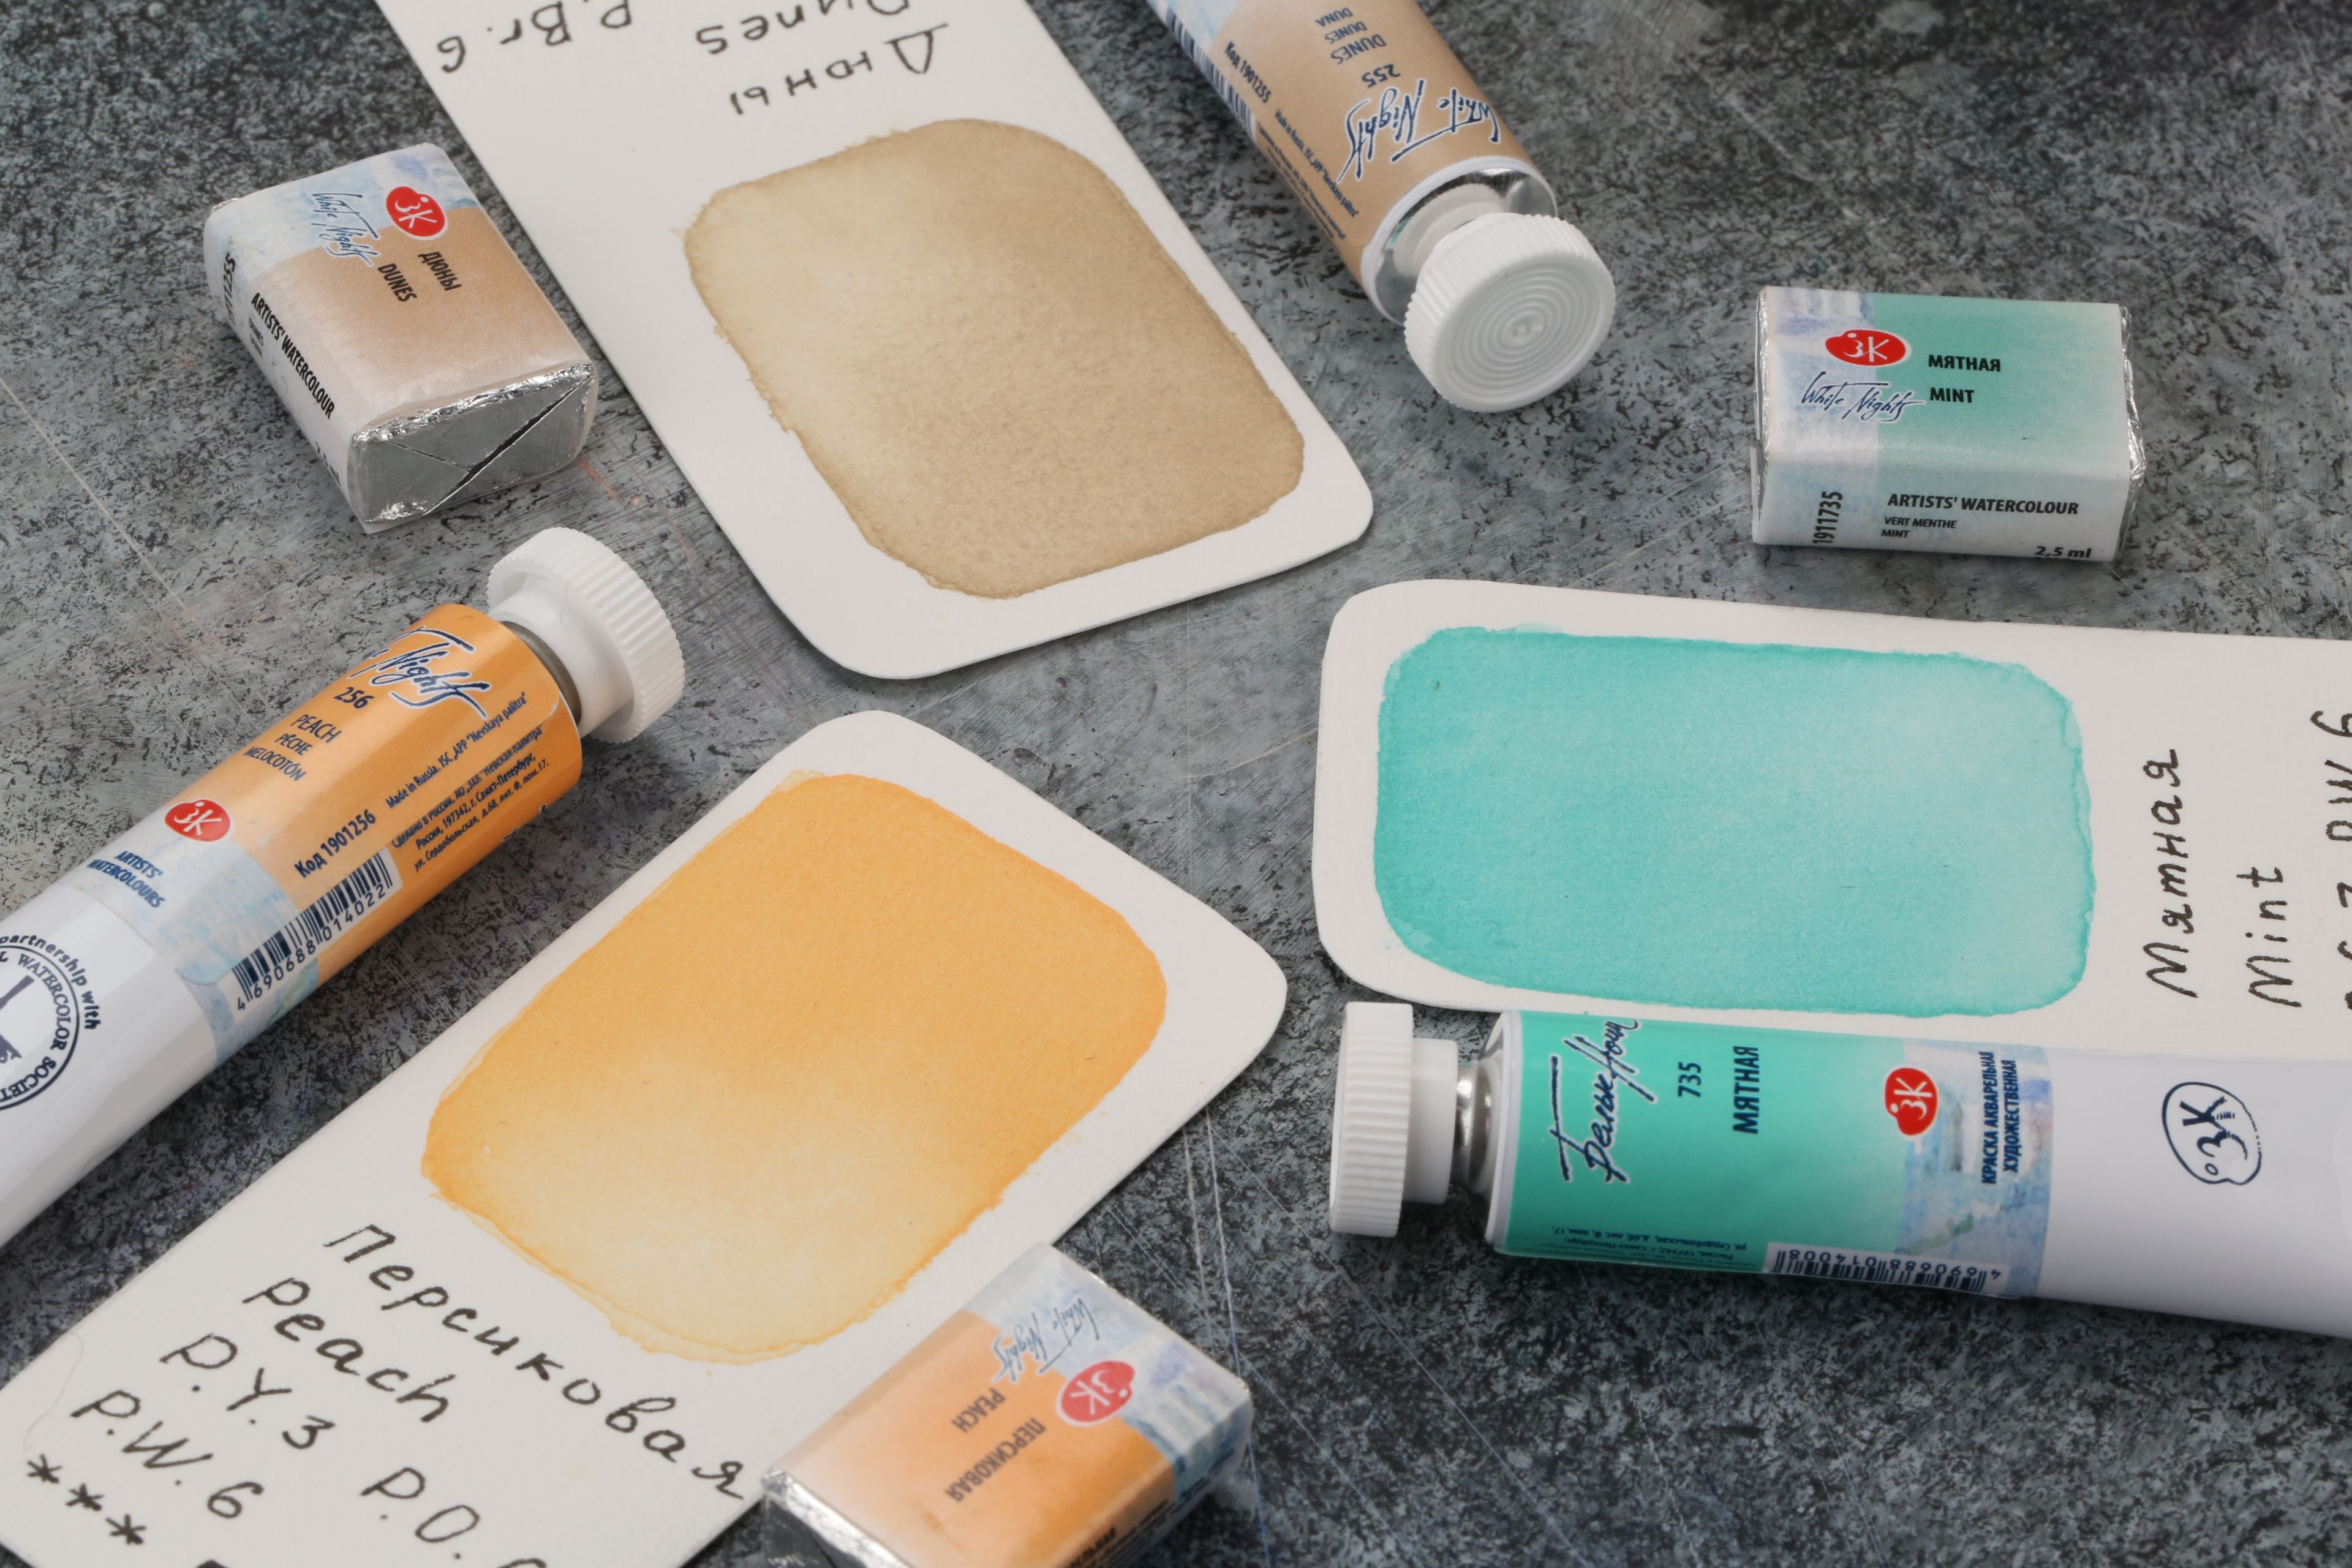 Watercolor Paint White Nights Russian Paints | White painting, Mint coral,  Watercolour painting